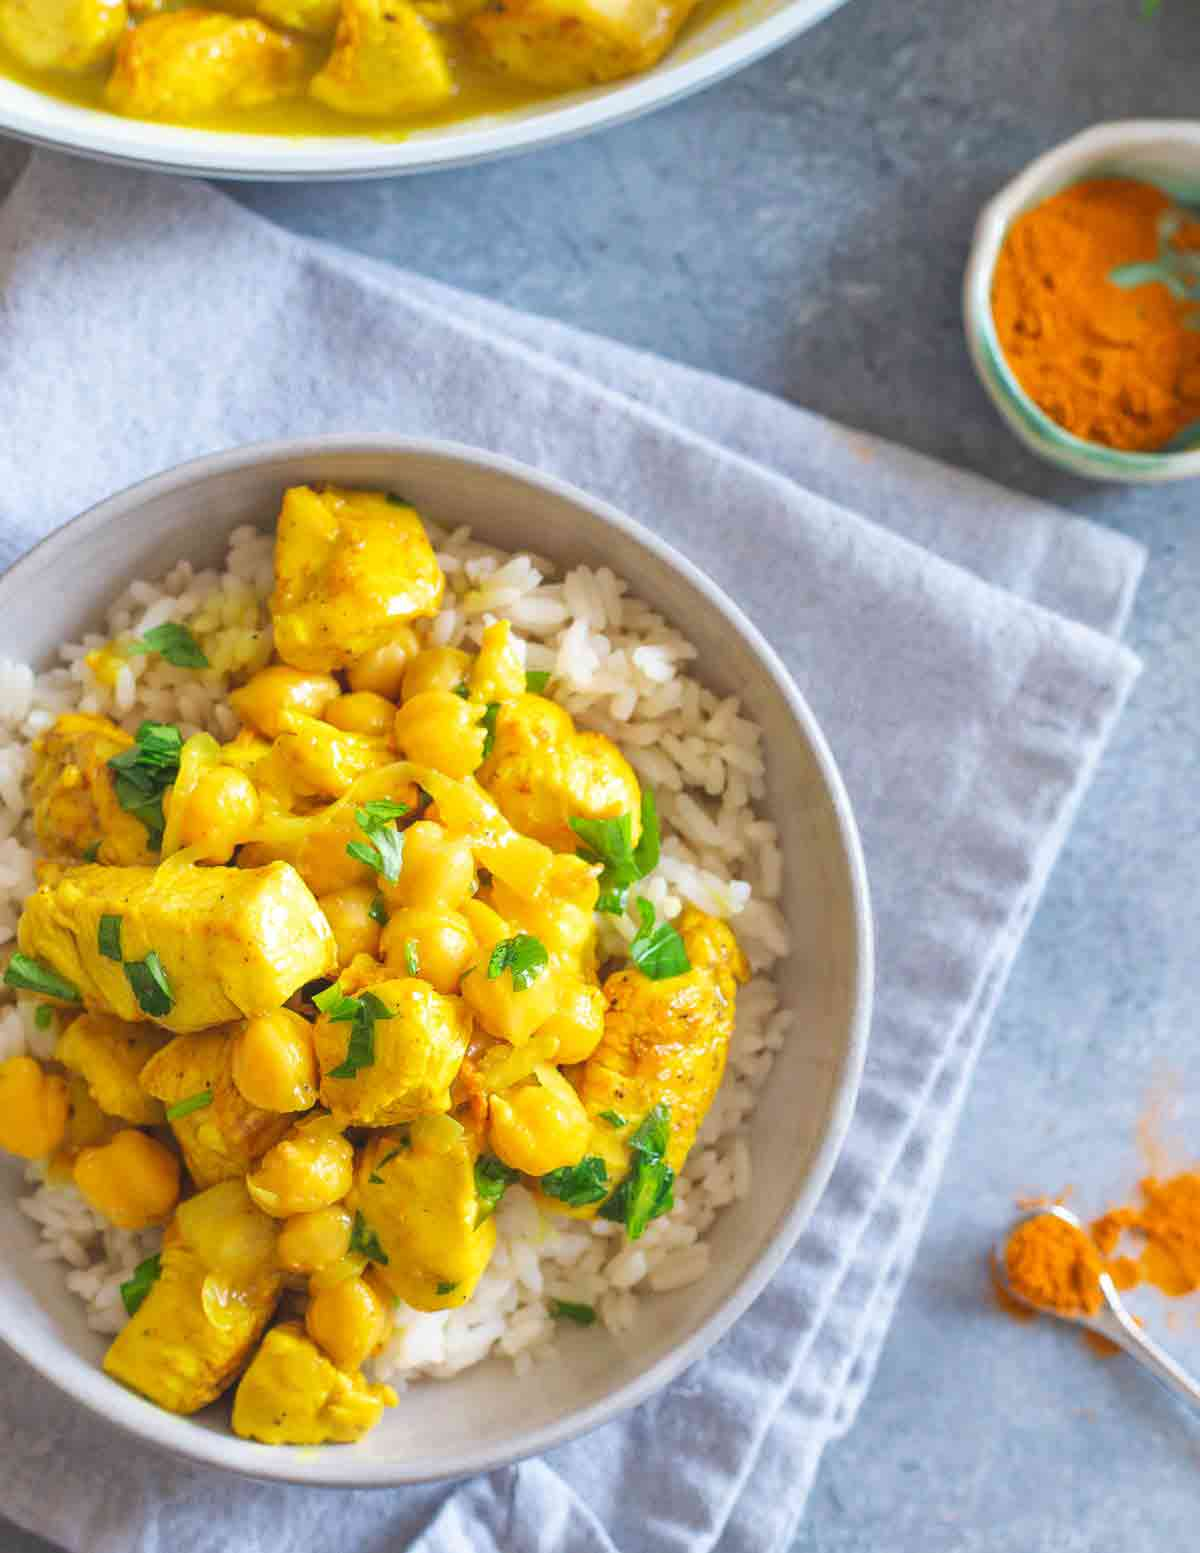 This turmeric chicken recipe is creamy and hearty with chickpeas and made in just 1 skillet in under 30 minutes.